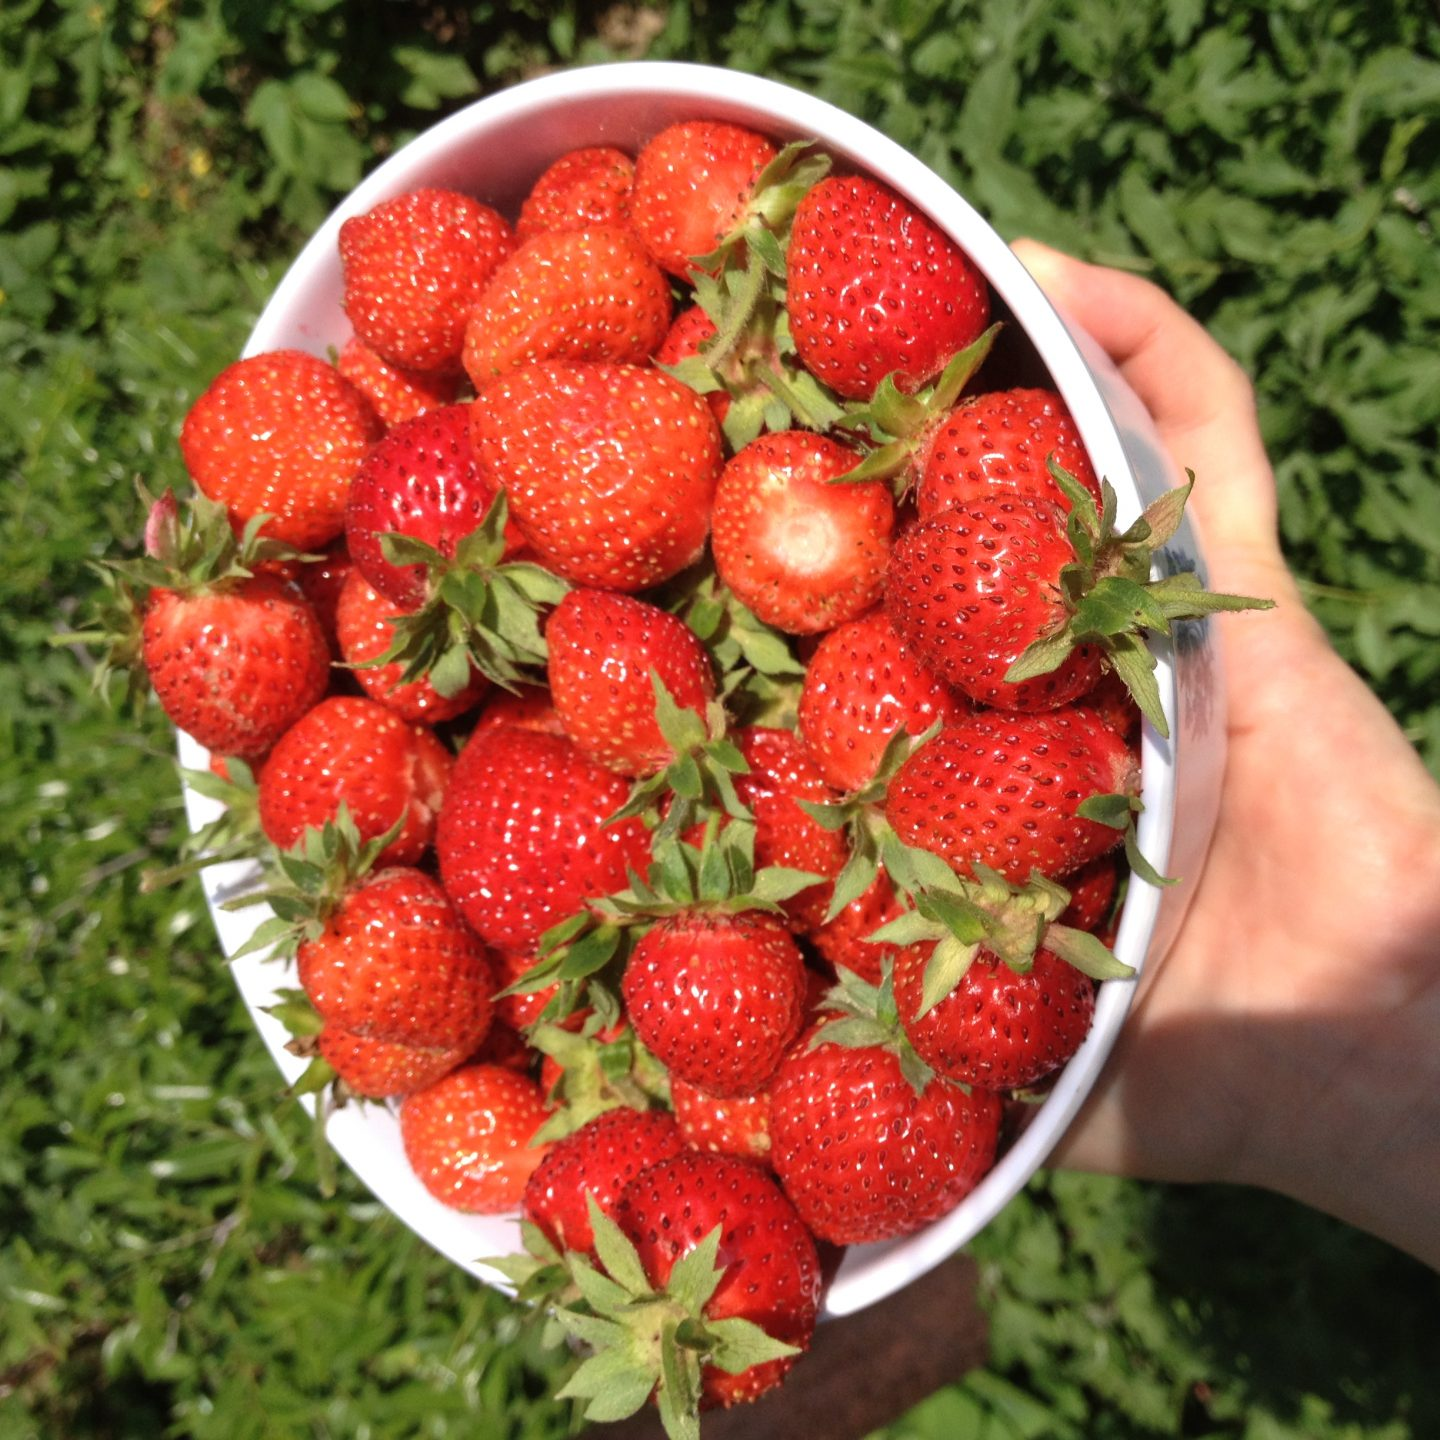 International team of scientists sequence the genome of cultivated strawberry